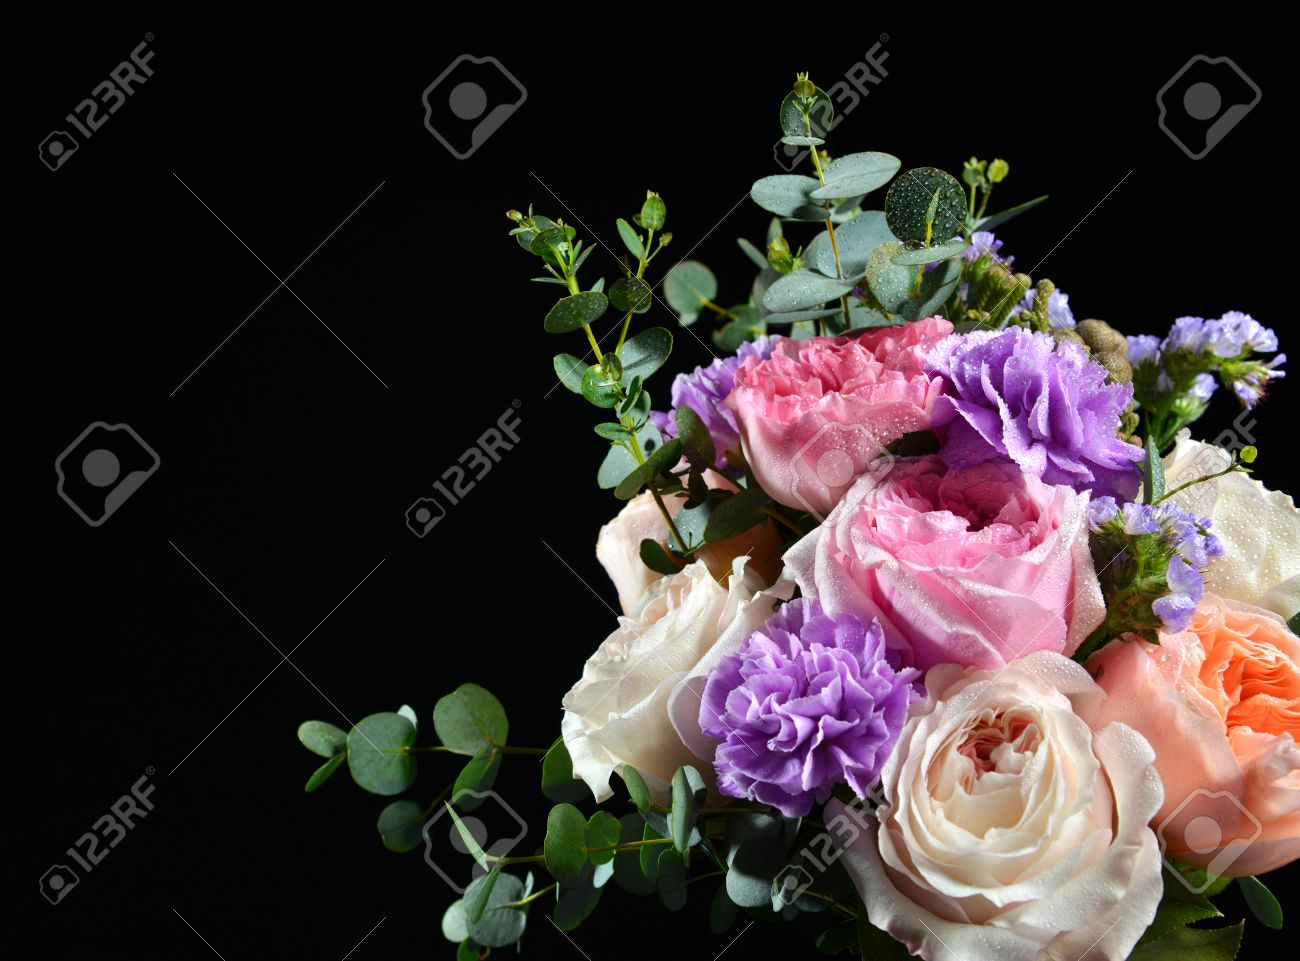 Beautiful bouquet of bright white pink purple roses flowers with beautiful bouquet of bright white pink purple roses flowers with green leafs on black background stok izmirmasajfo